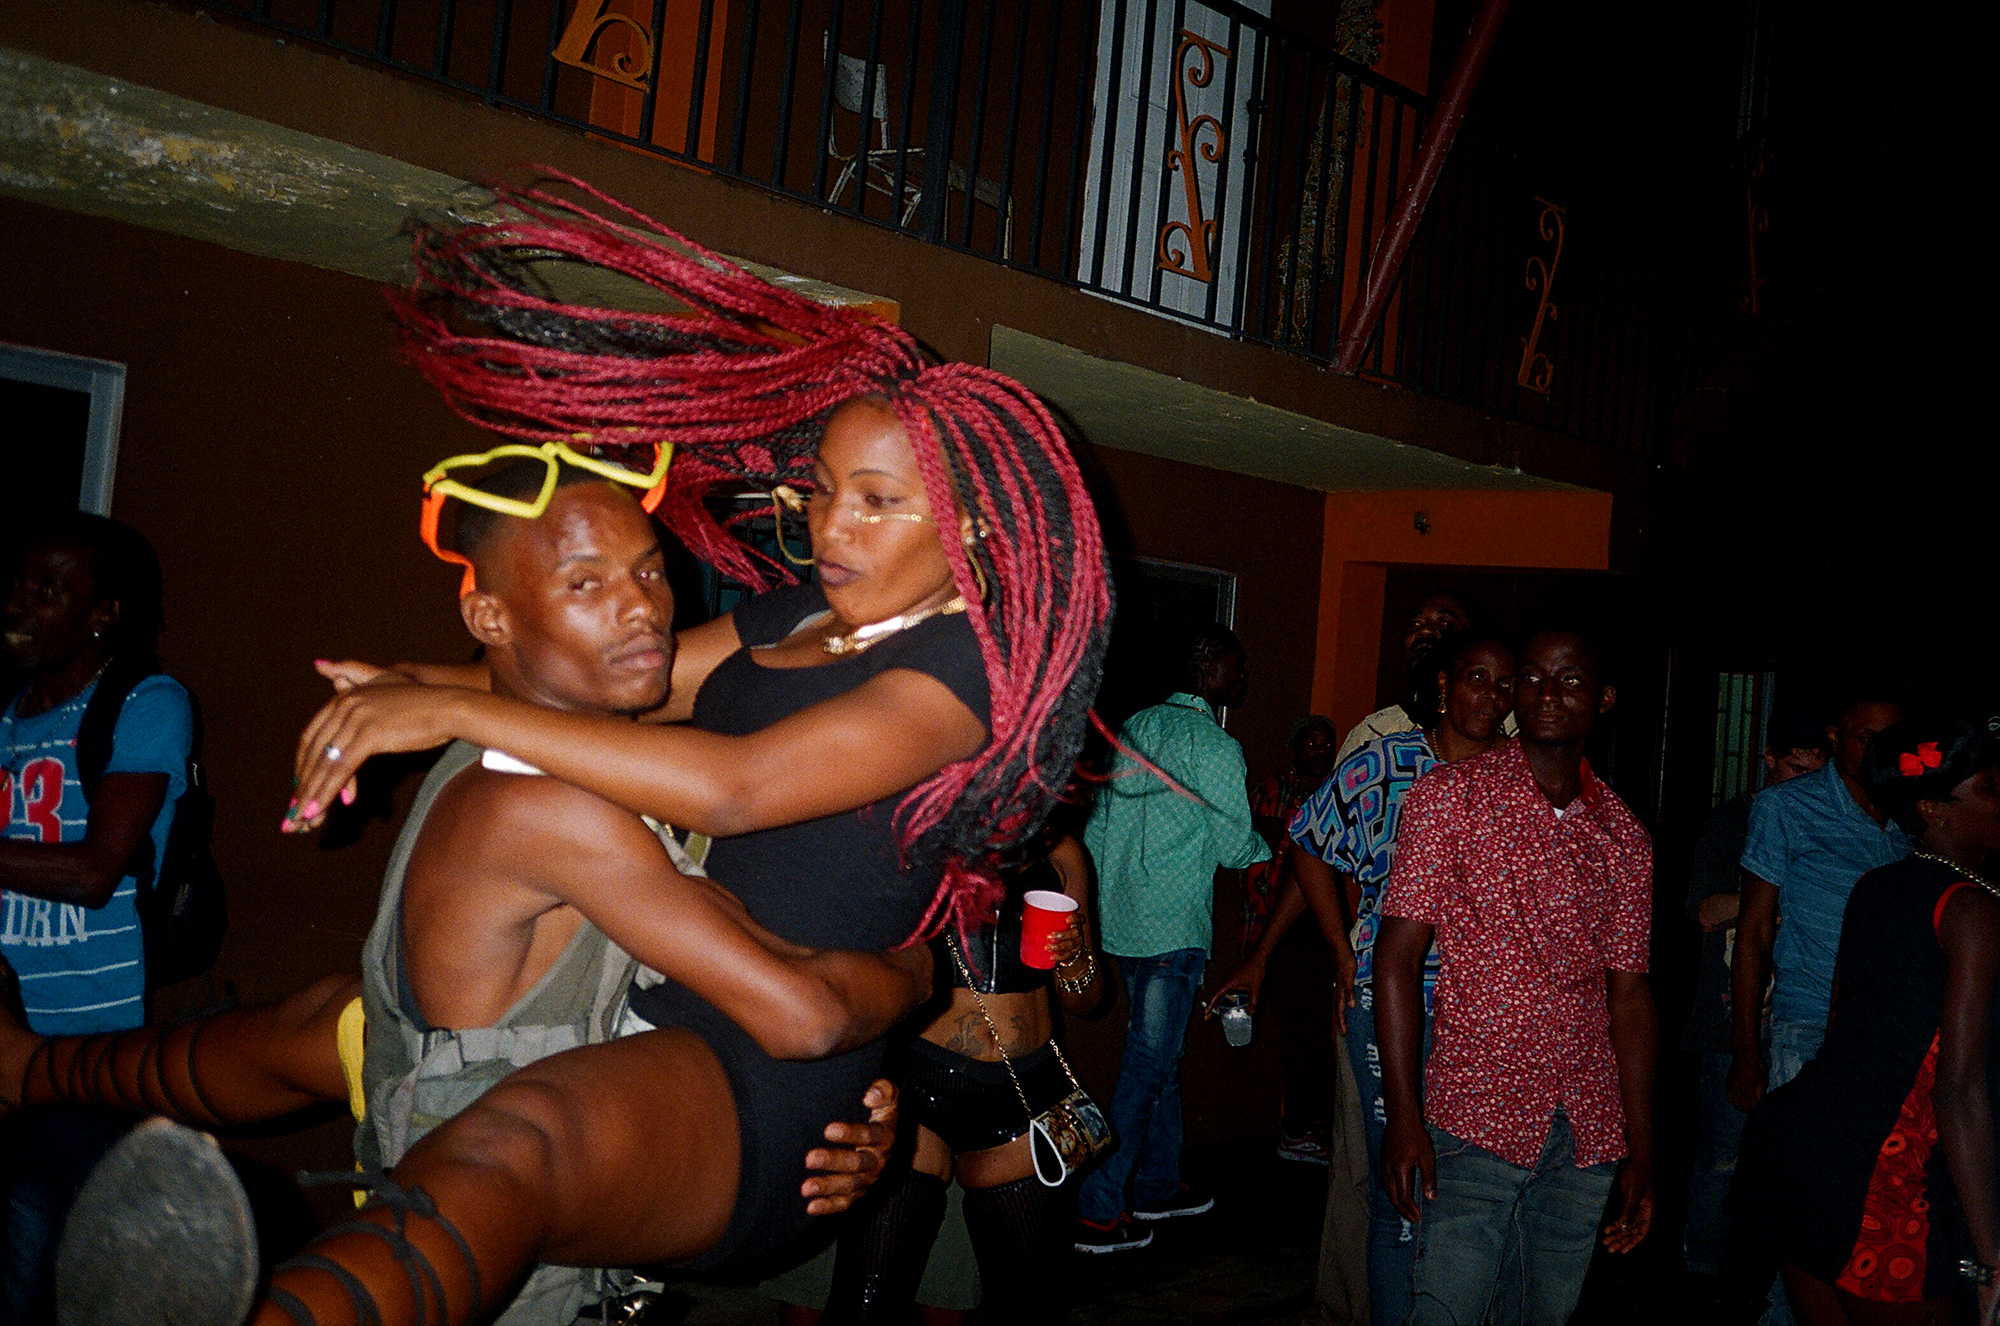 Kingston, jamaica party-goers